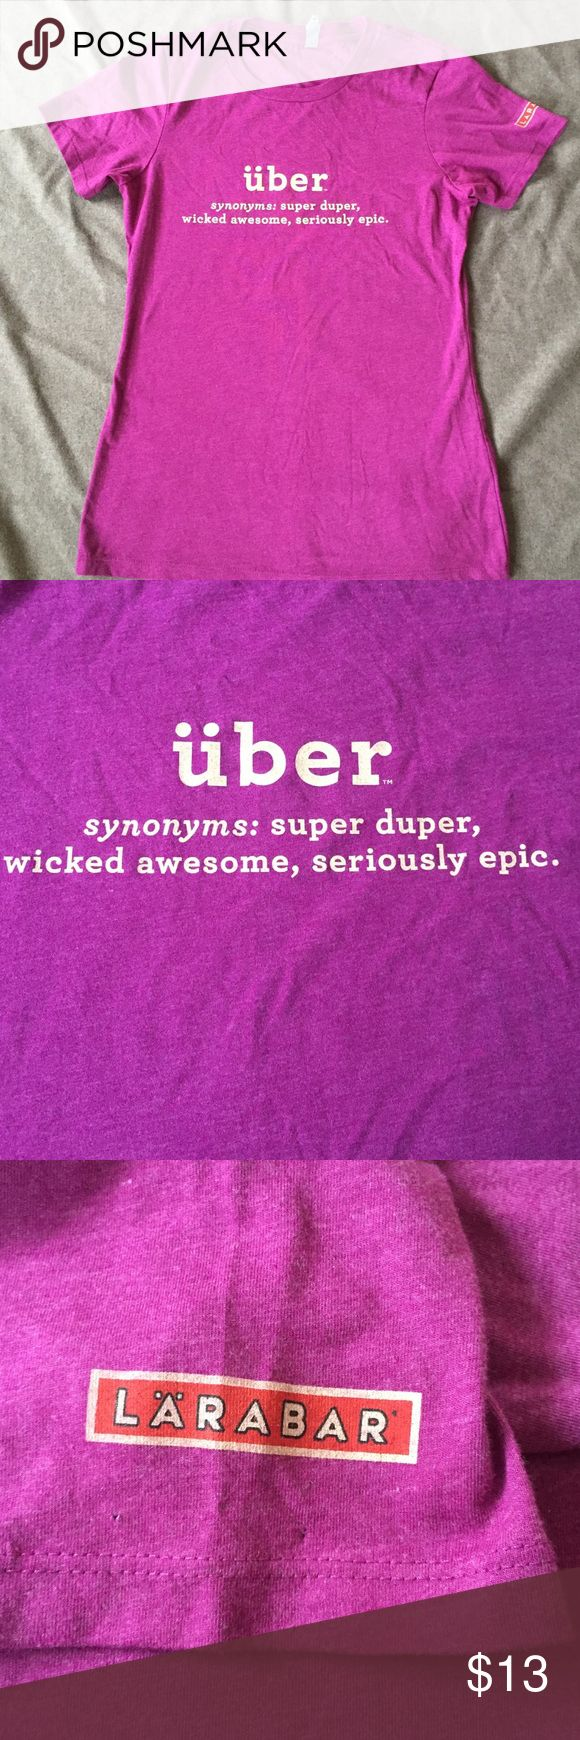 Purple pinkish Uber shirt great condition no stains or holes  from next level apparel Next Level Apparel Tops Tees - Short Sleeve